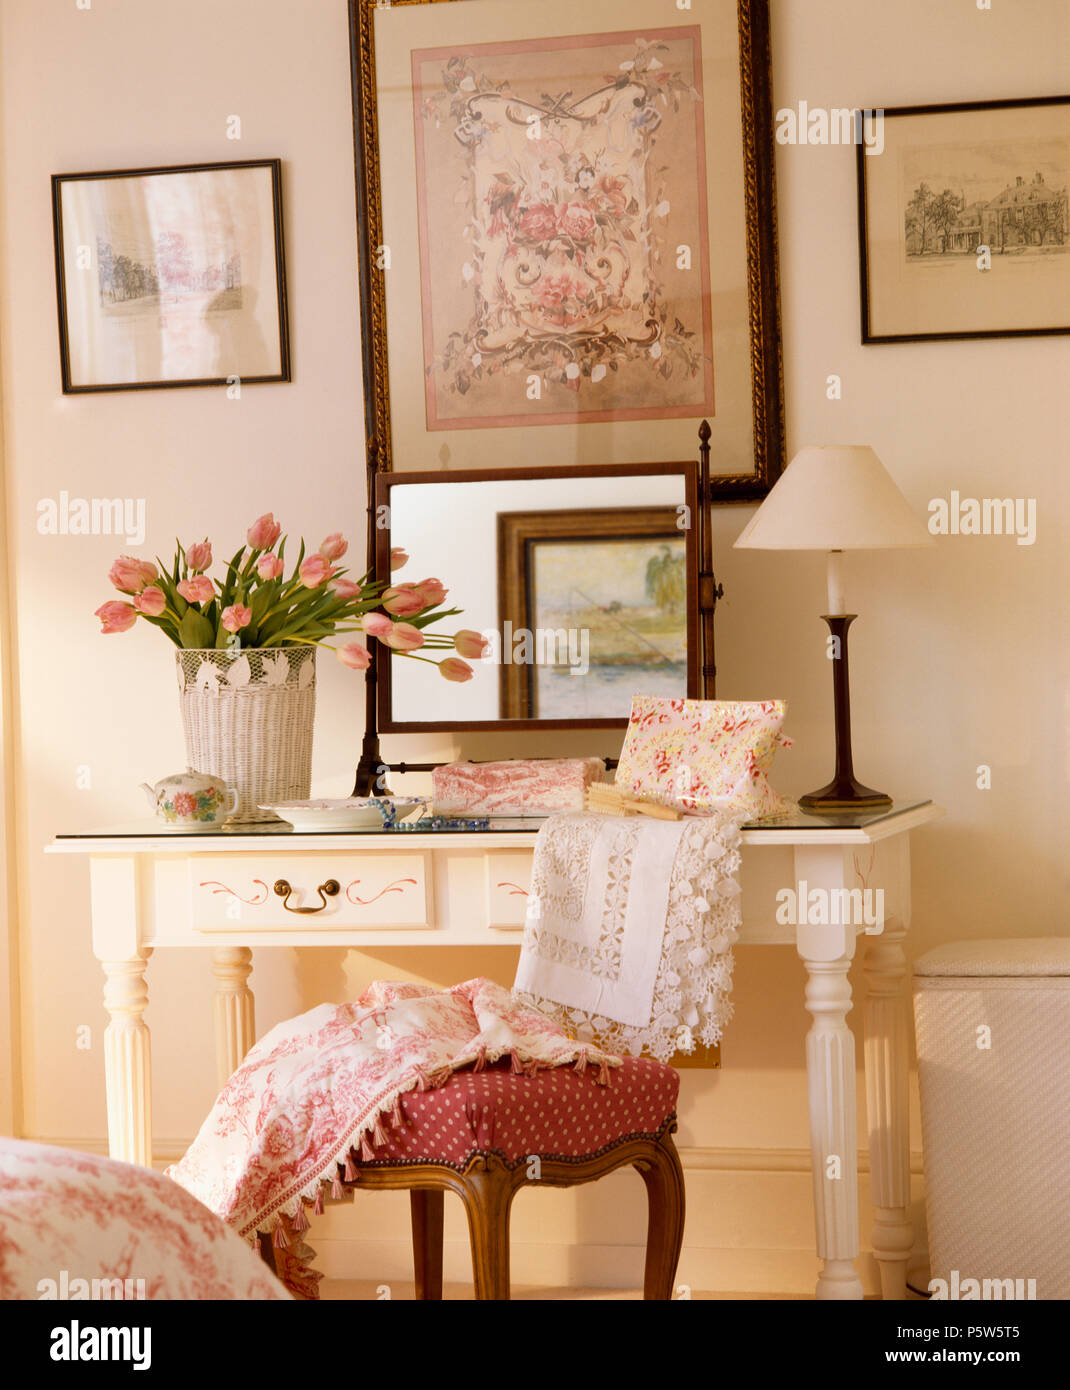 Floral Picture Above Cream Dressing Table With Antique Mirror Between Cream  Lamp And Vase Of Tulips In Traditional Bedroom